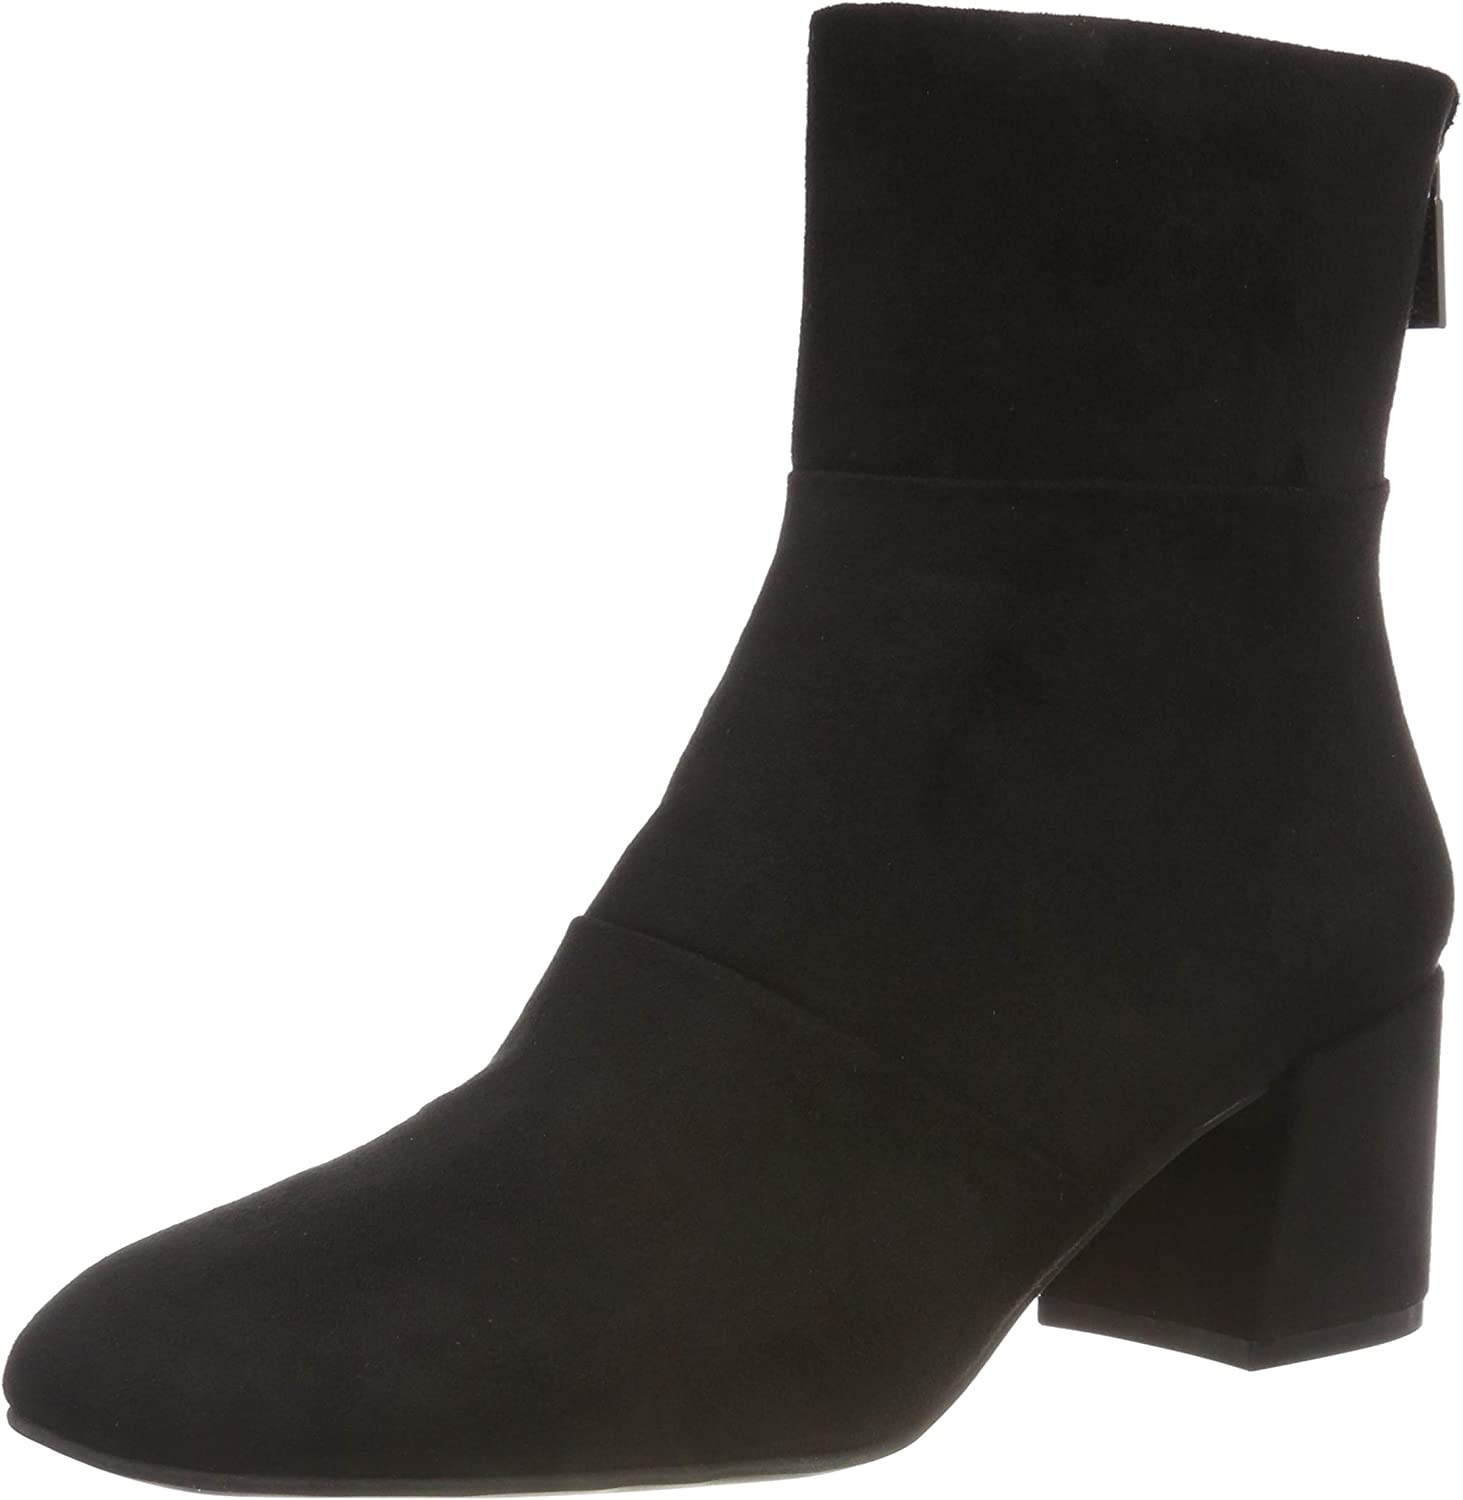 Kenneth Cole New York Womens Eryc Square Toe Ankle Bootie Ankle Boot